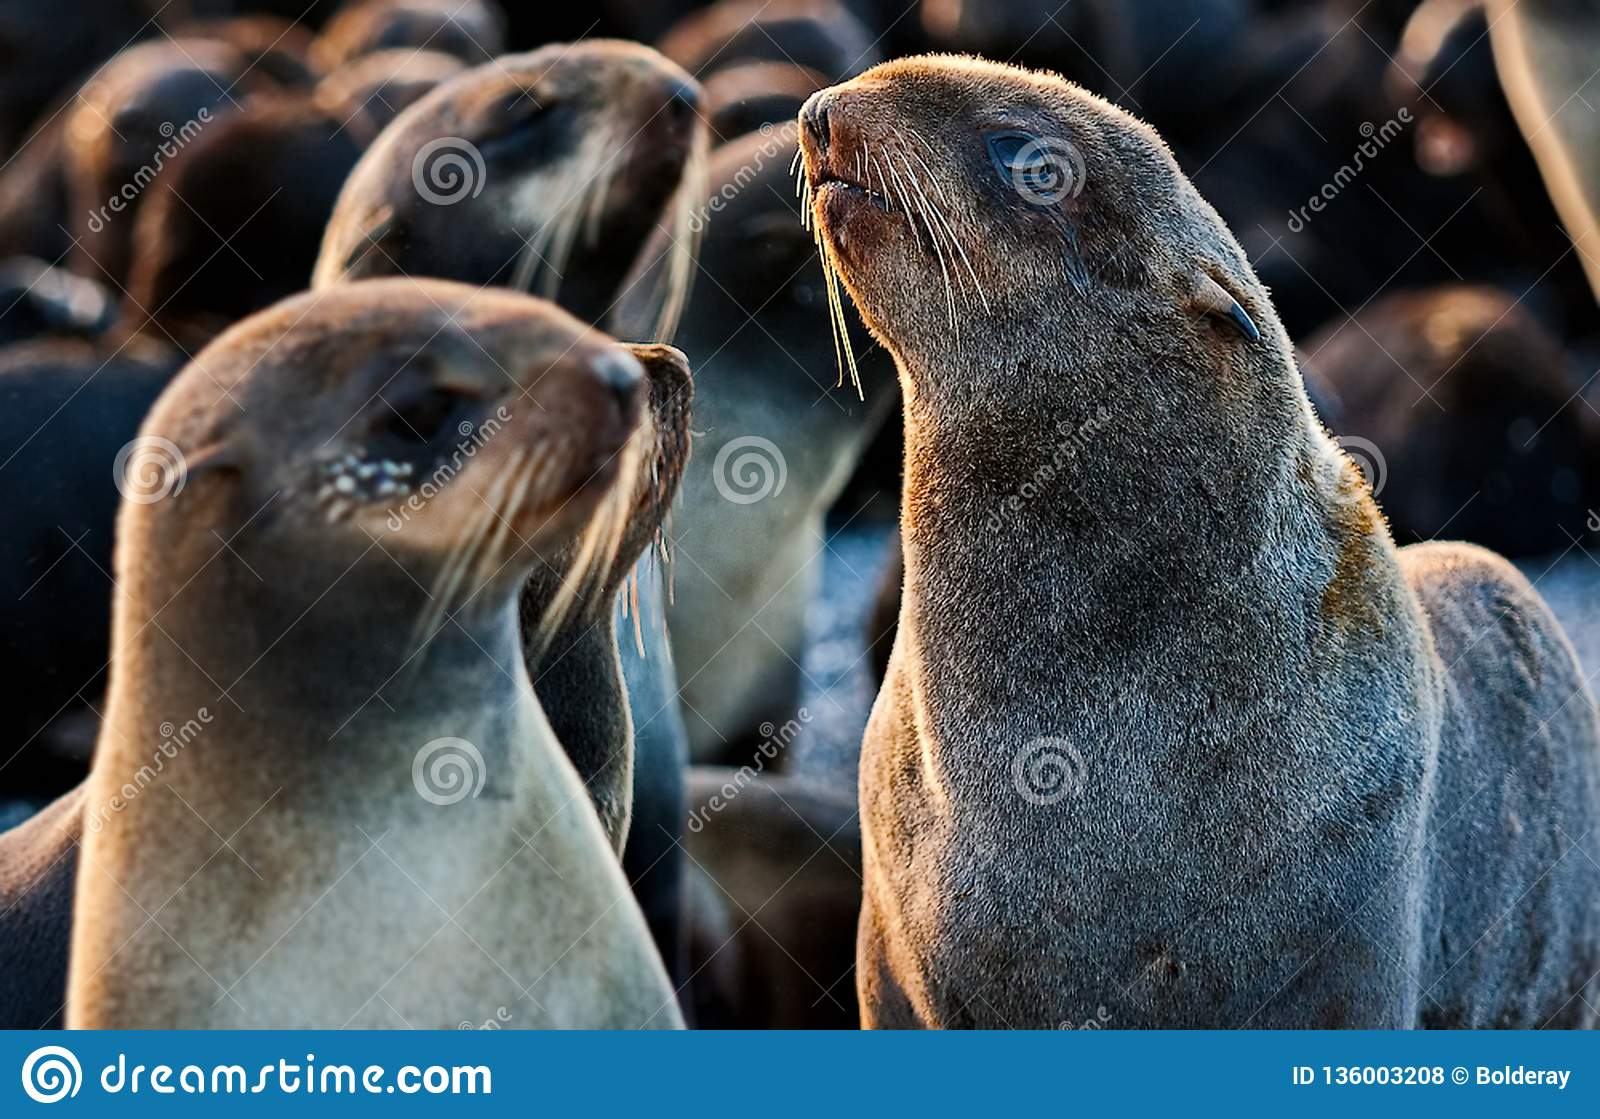 Northern fur seal Callorhinus ursinus is an eared seal found along the north Pacific Ocean, the Bering Sea